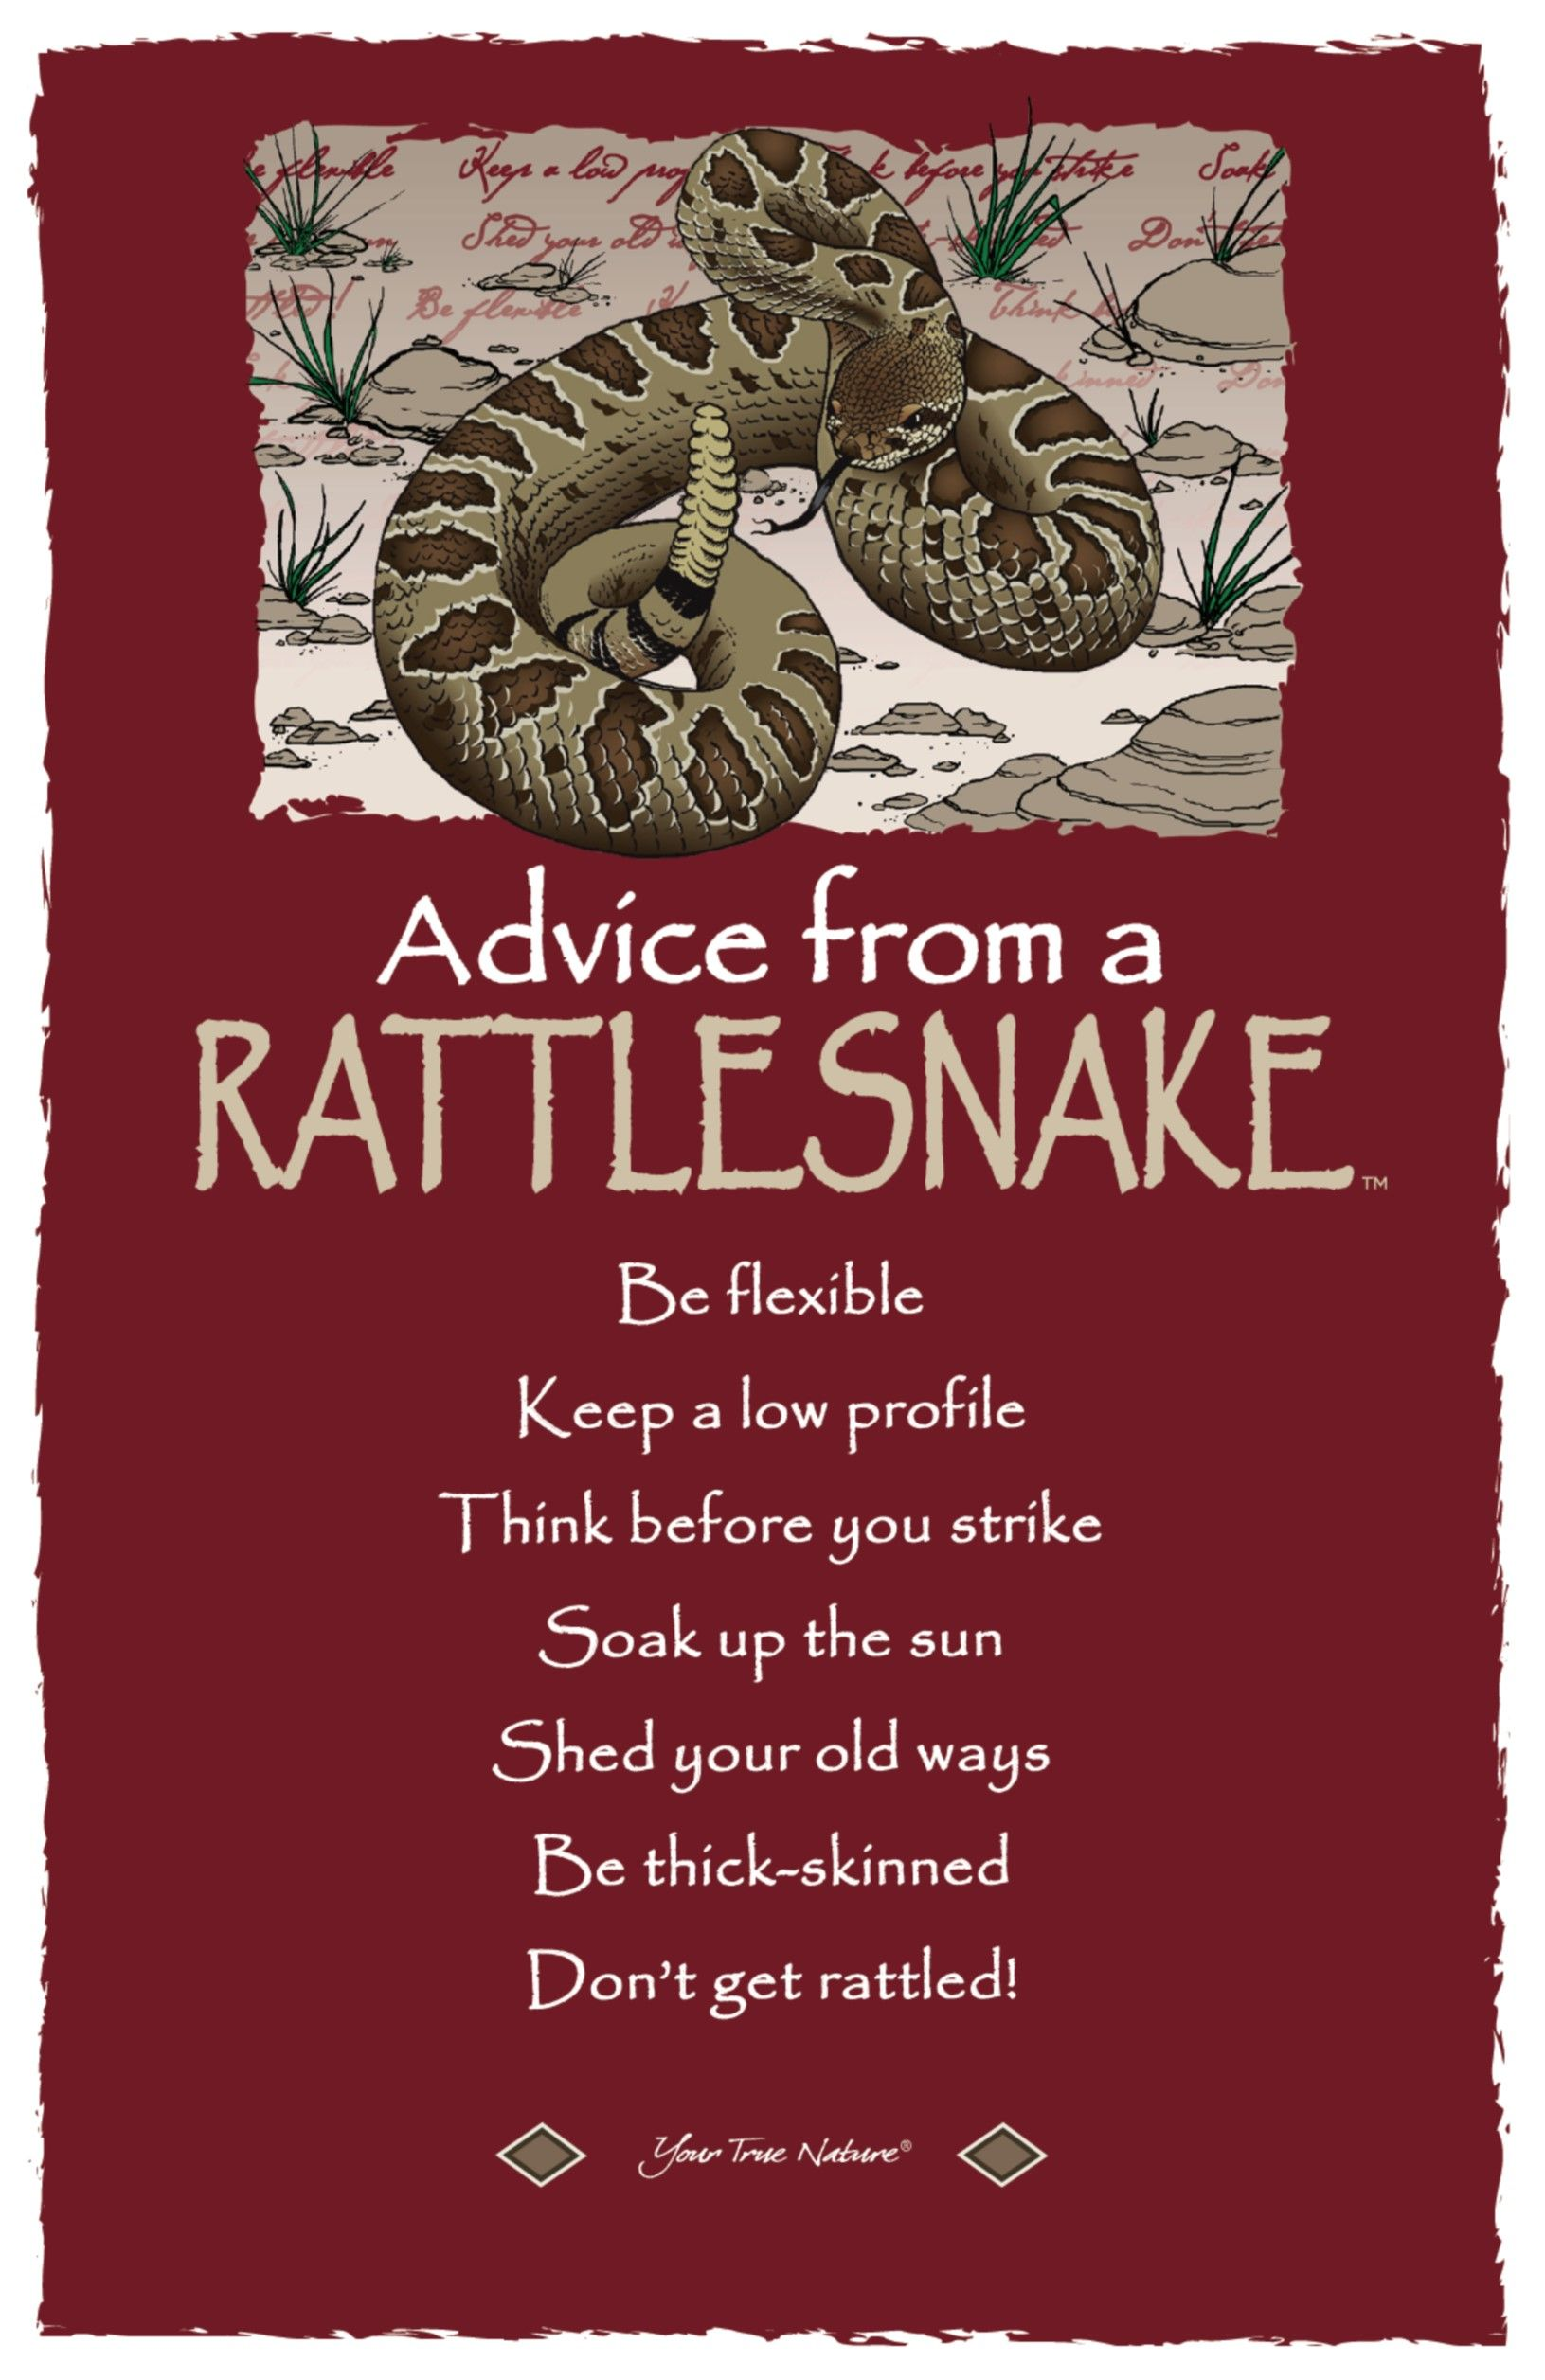 Advice from a Rattlesnake